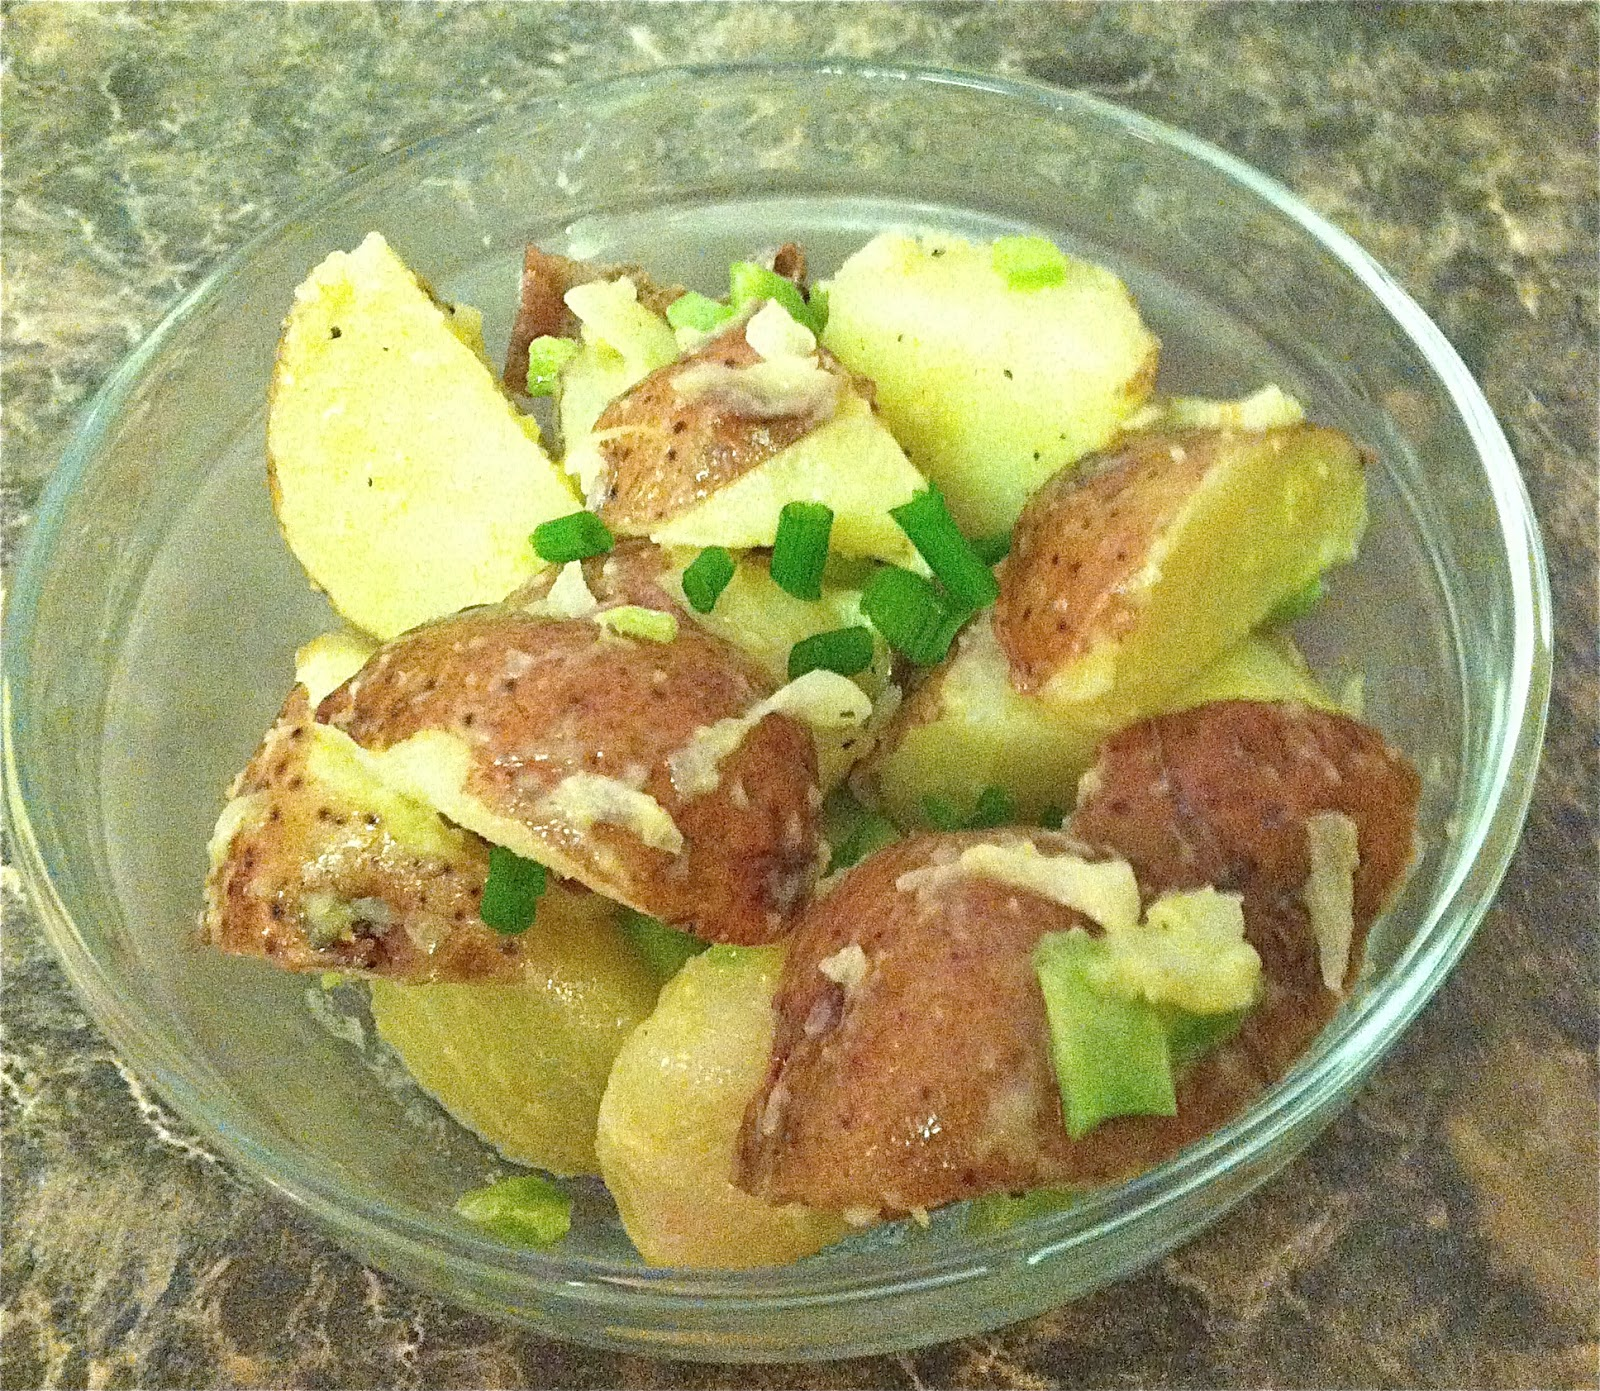 Holly B Baking : Healthier Baby Red Potato Salad